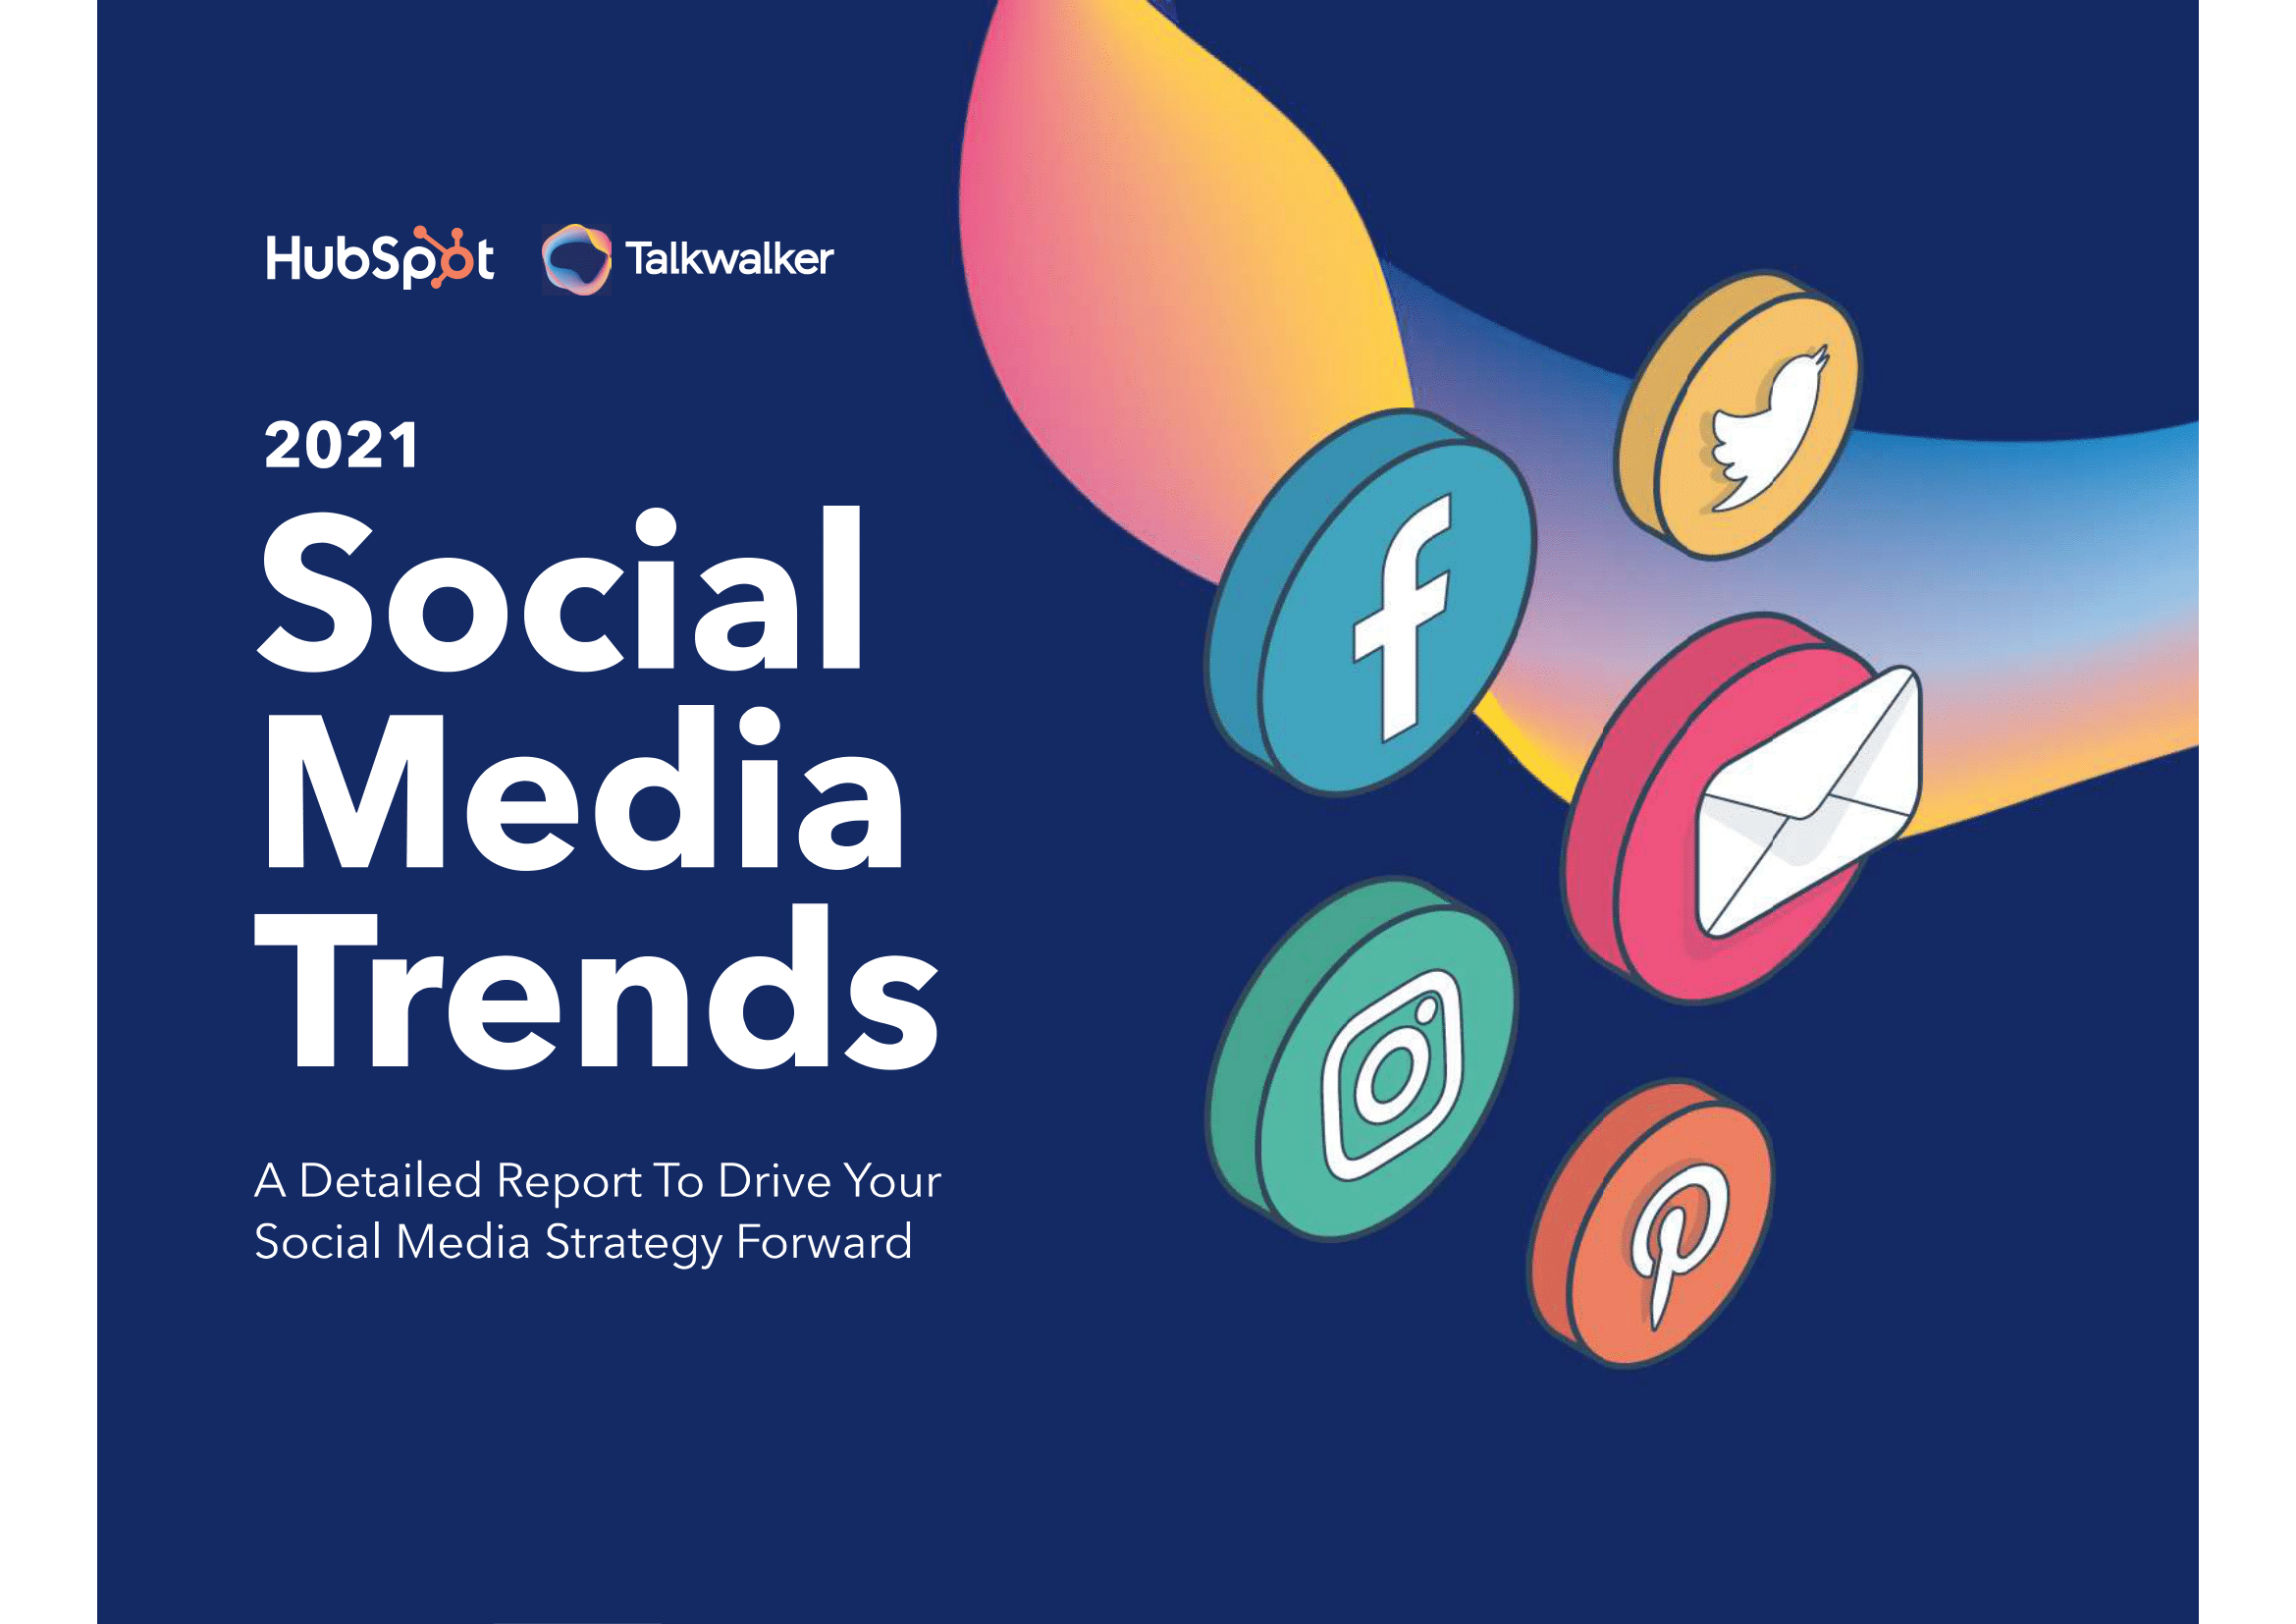 Talkwalker and HubSpot define the social media trends to watch in 2021